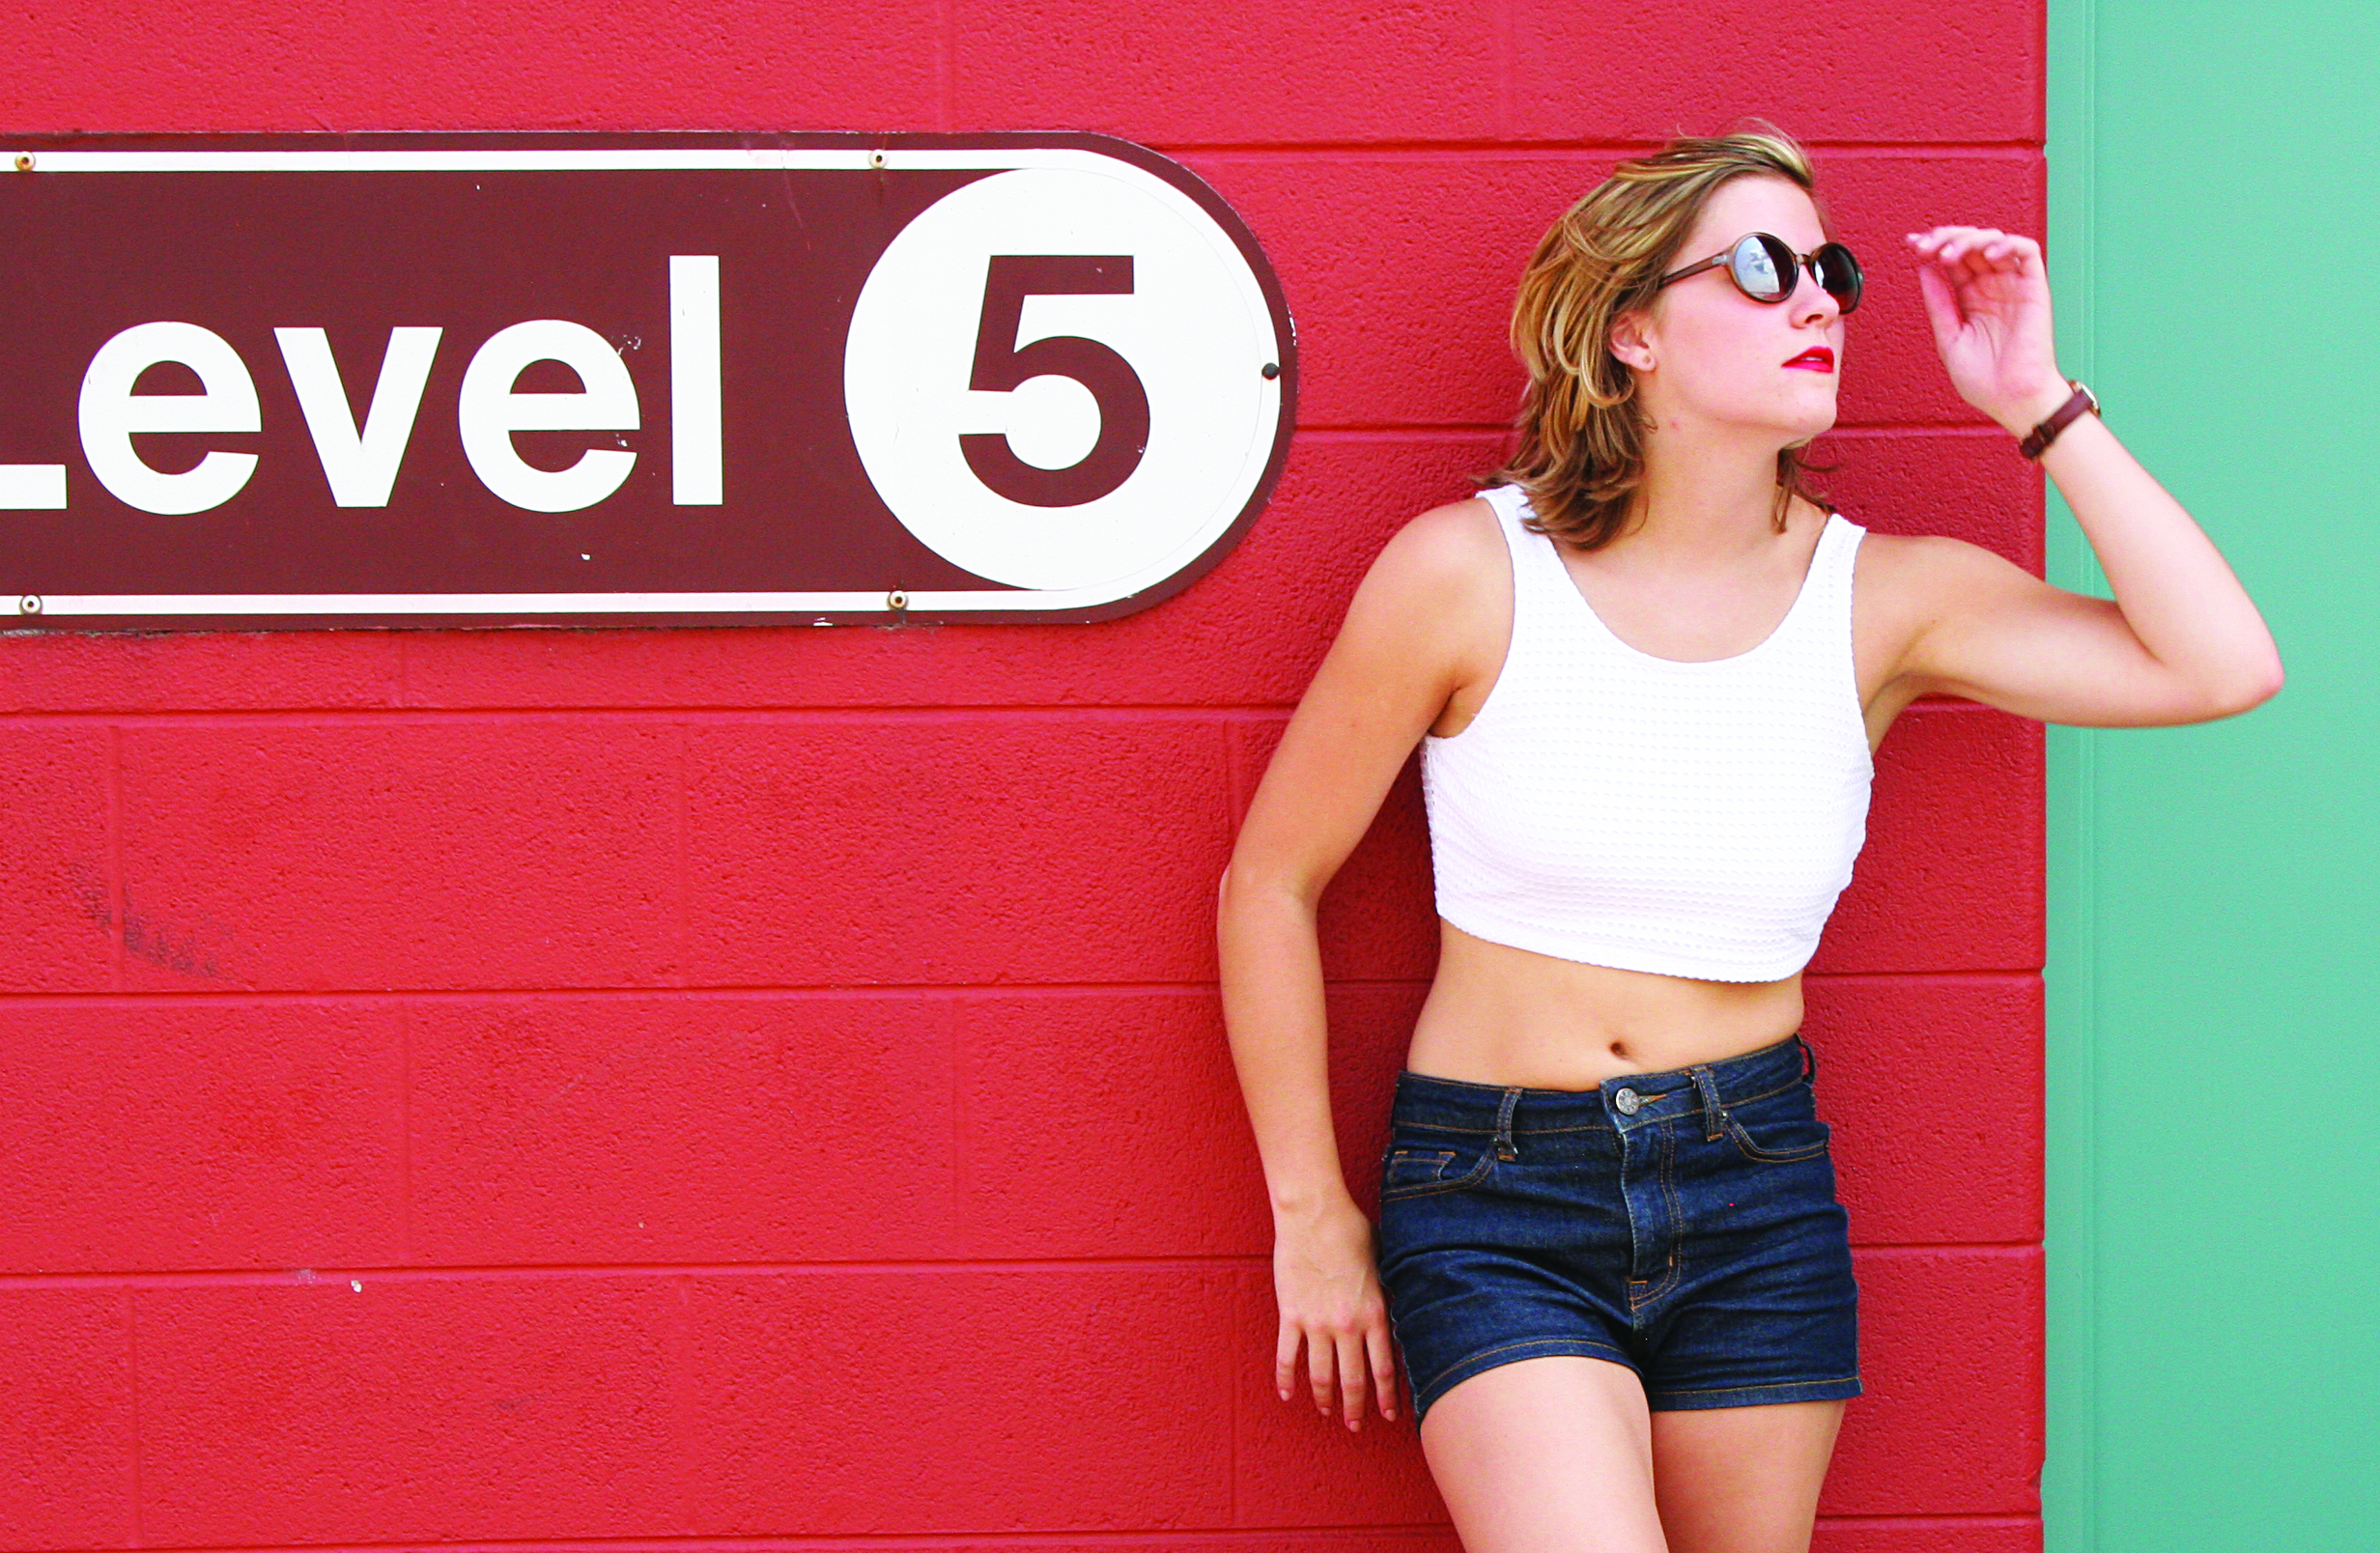 photo: Kierstin | top: Express, shorts: Urban Outfitters, sunglasses: Target, watch: Urban Outfitters